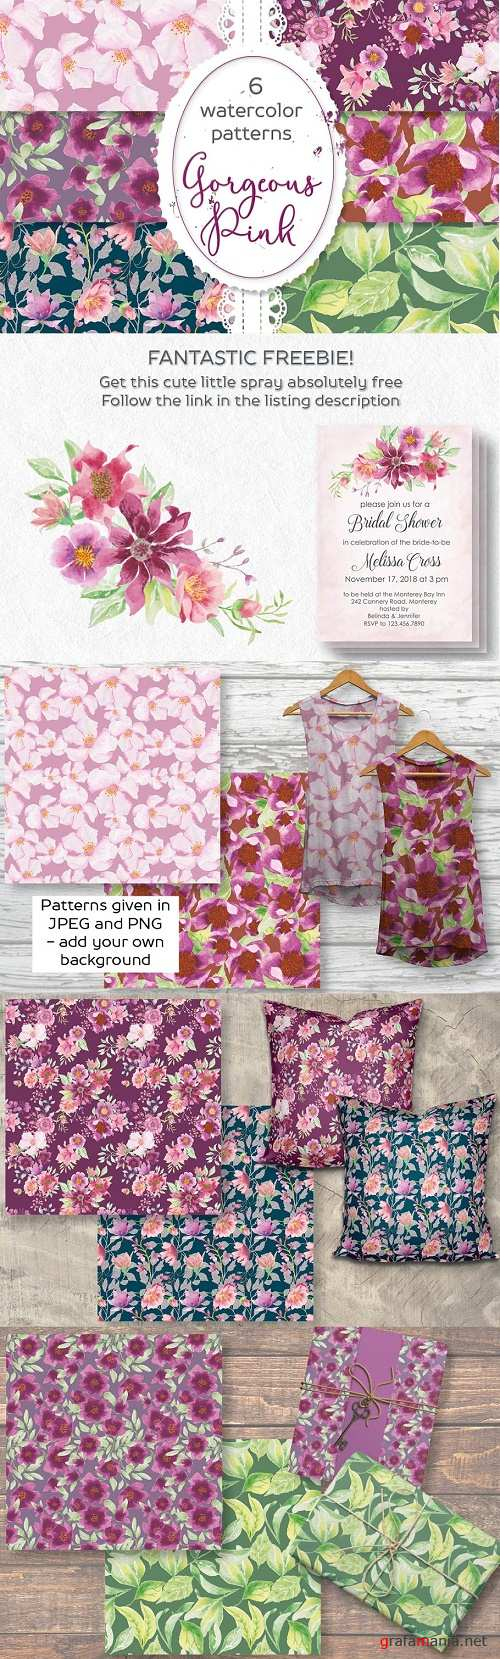 Six pink floral watercolor patterns - 2624167